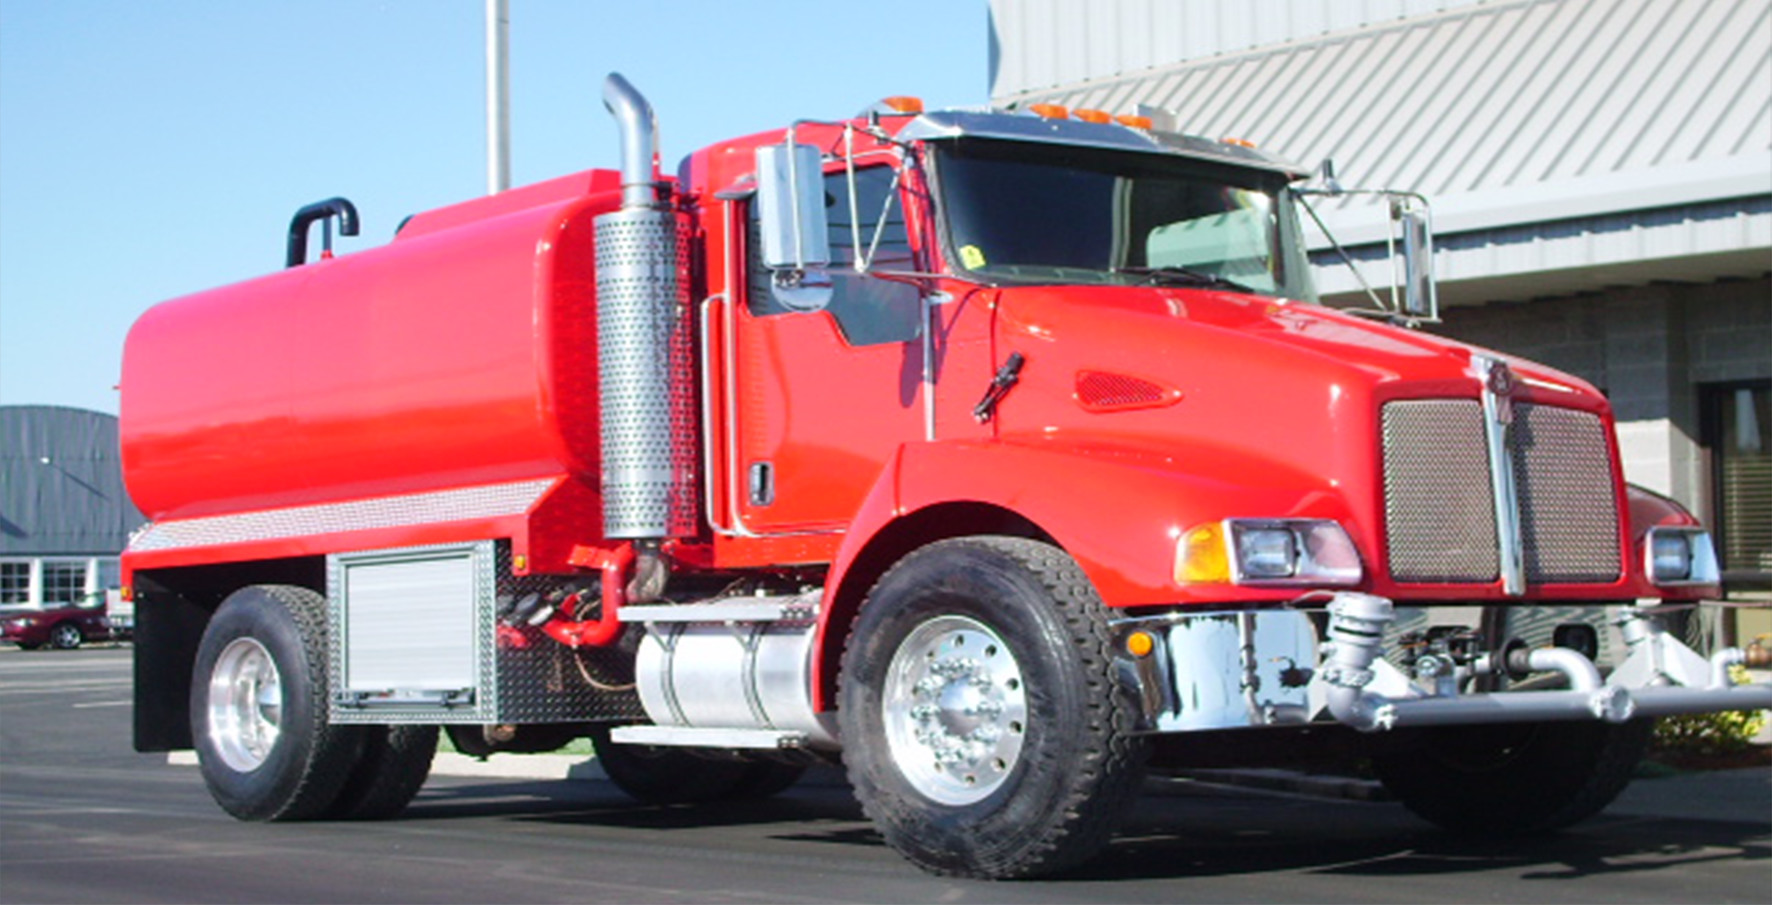 SG Wilson Trucks for Sale in Central Point, OREGON